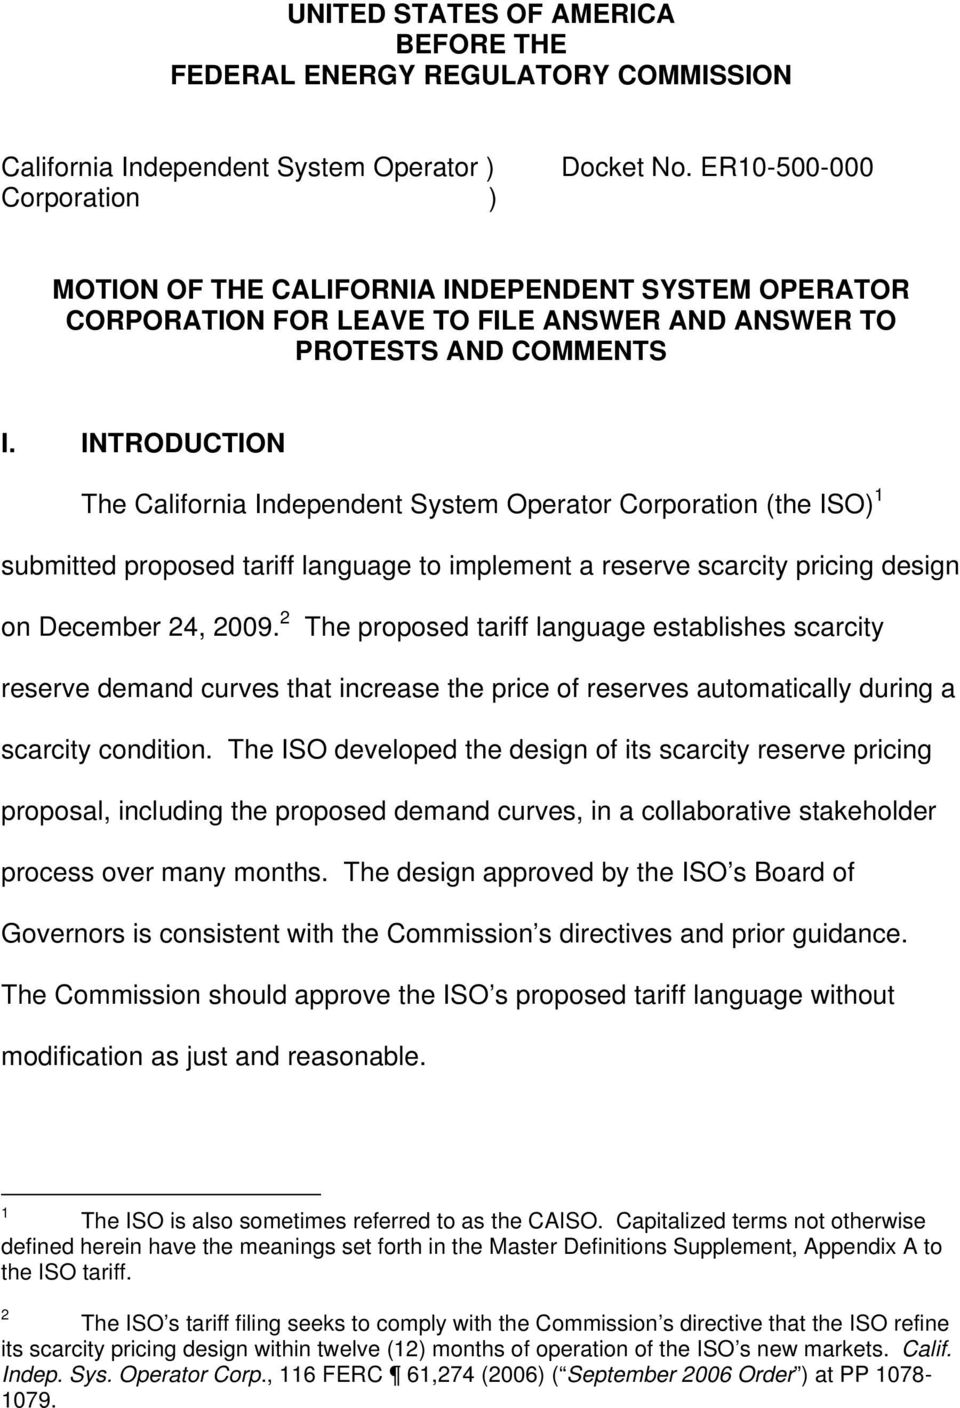 INTRODUCTION The California Independent System Operator Corporation (the ISO) 1 submitted proposed tariff language to implement a reserve scarcity pricing design on December 24, 2009.